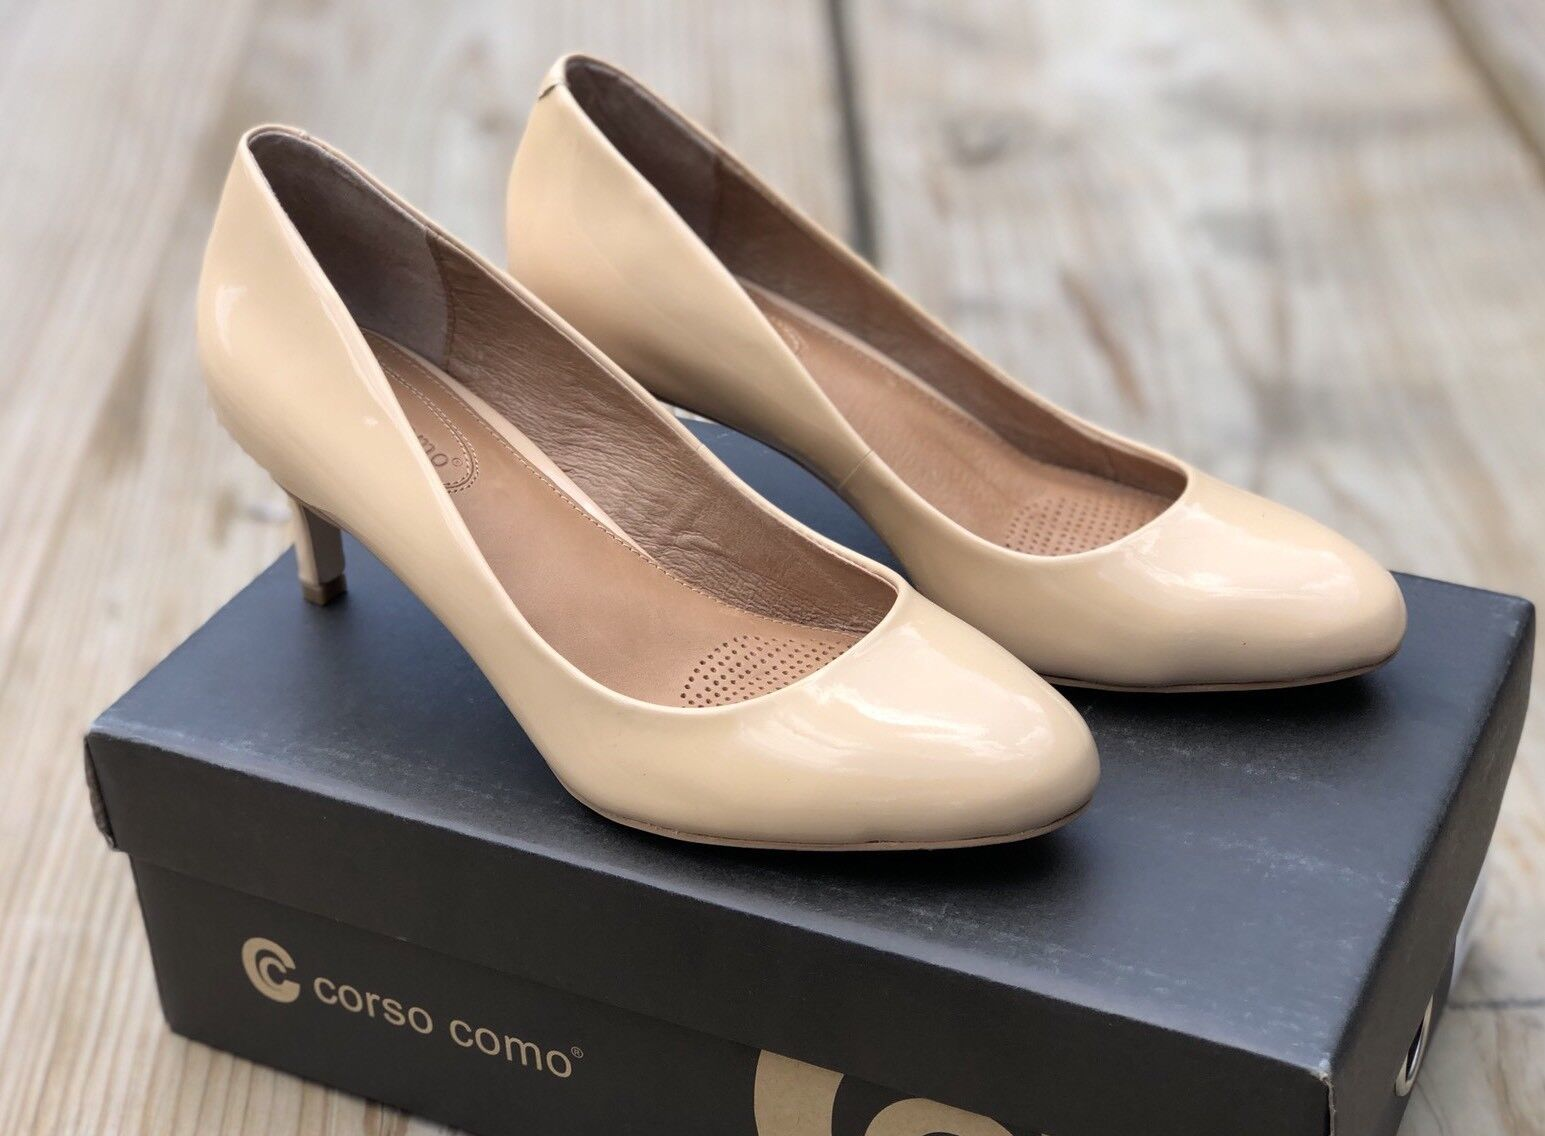 Corso Como Lisbeth Nude Patent Leather Women's Heels Pumps Size US 6 NEW